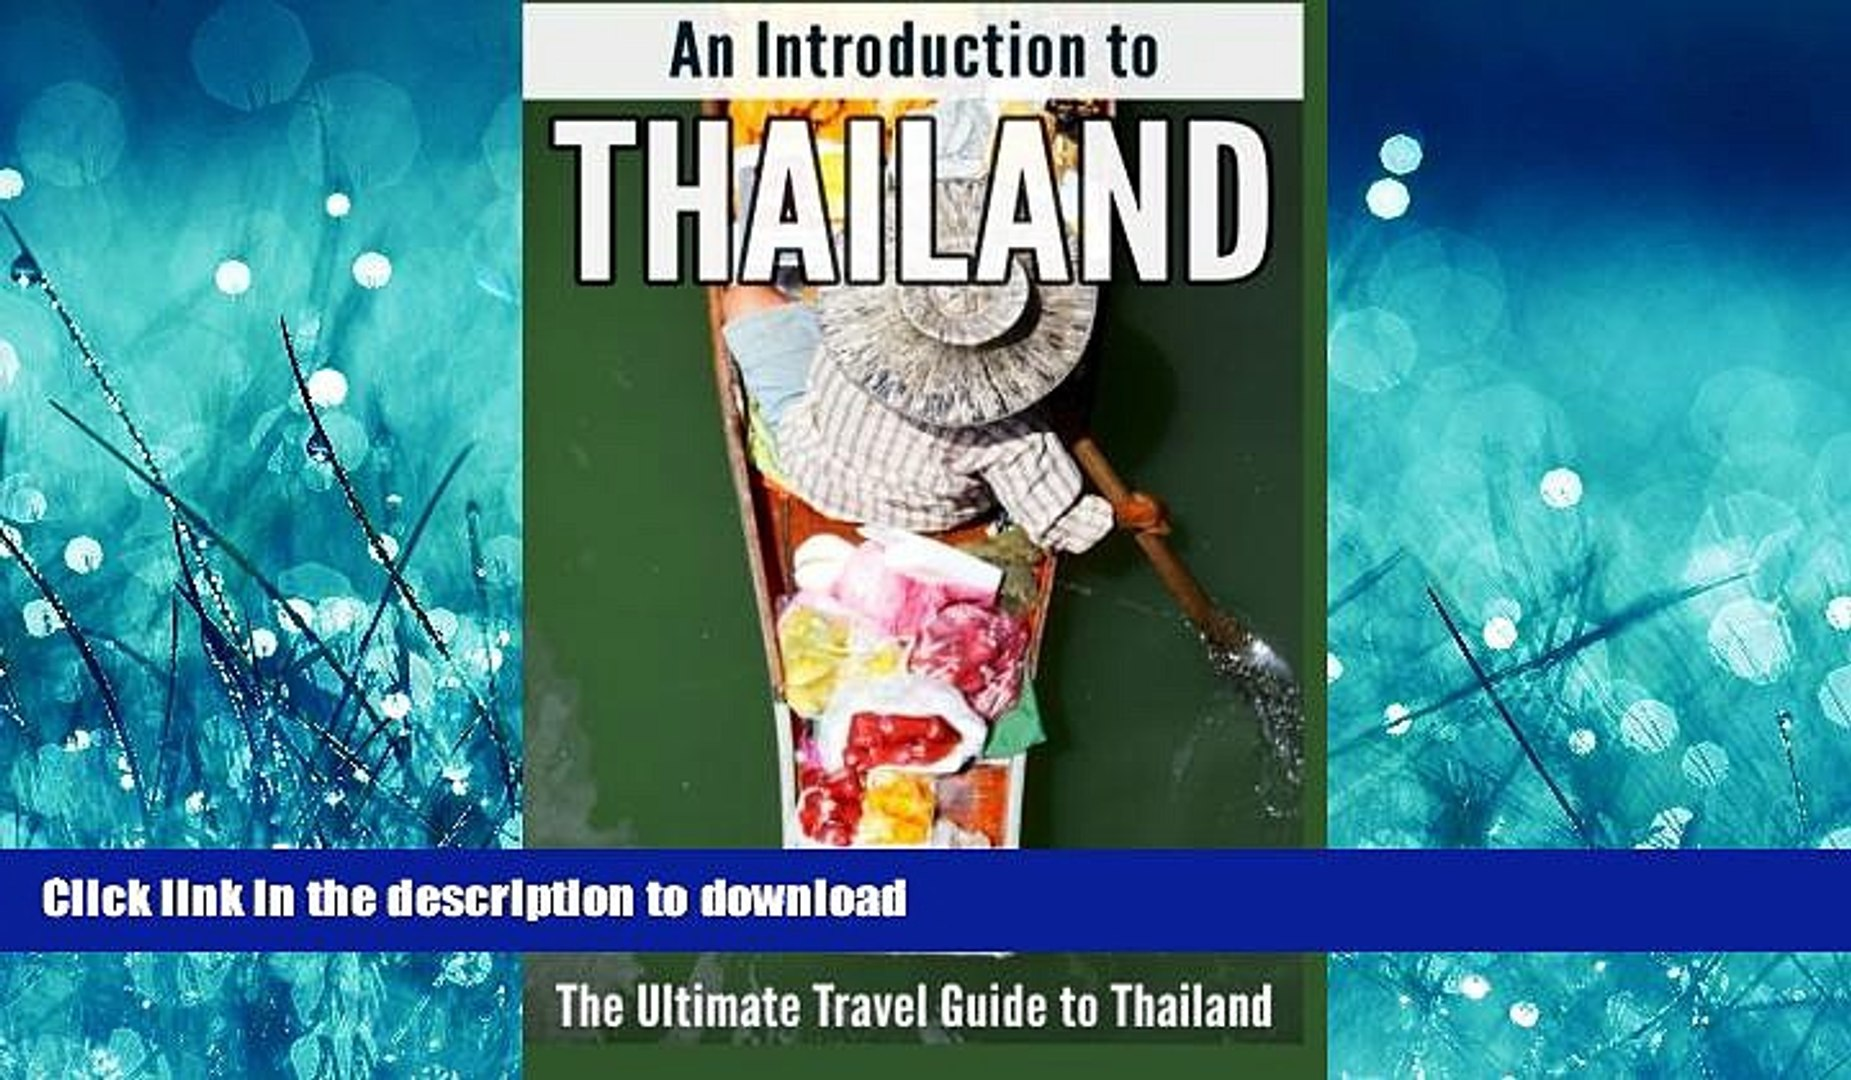 An Introduction to Thailand: The Ultimate Travel Guide to Thailand